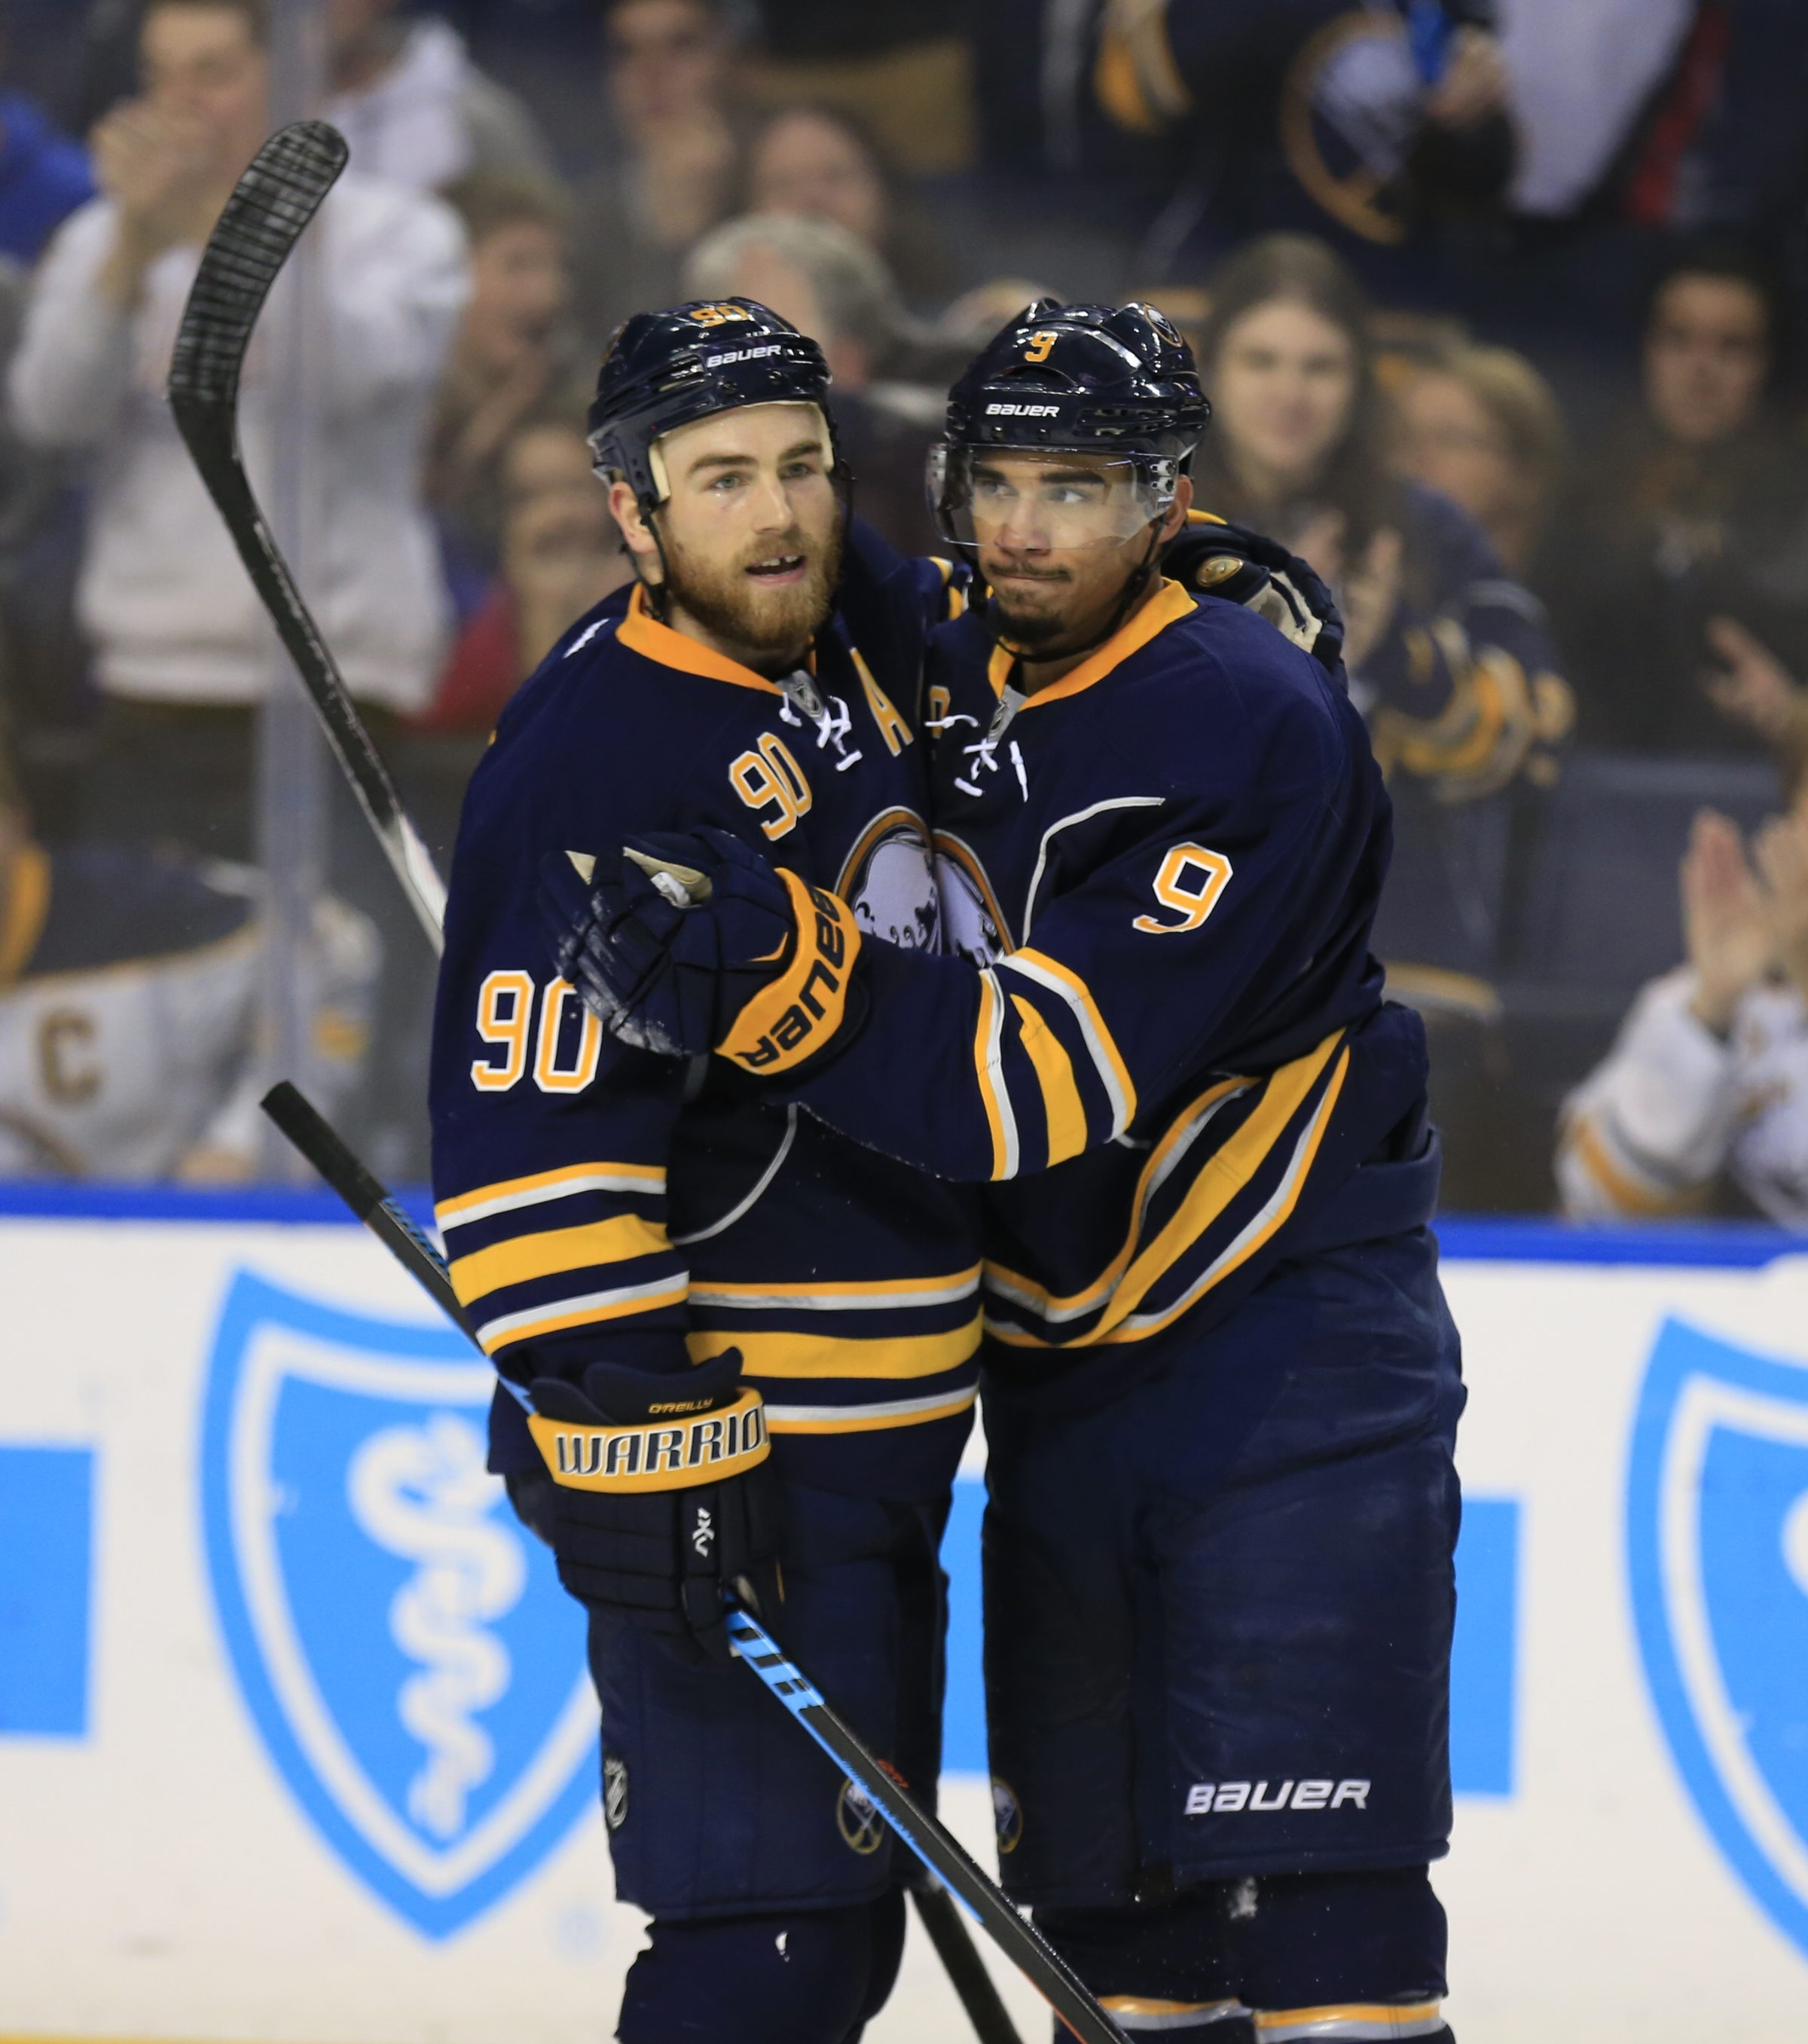 Bufalo Sabre Evander Kane celebrates a empty net goal with Ryan O'Reilly against the Arizona Coyotes during third period action at the First Niagara Center on Friday, Dec. 4, 2015. (Harry Scull Jr./Buffalo News)